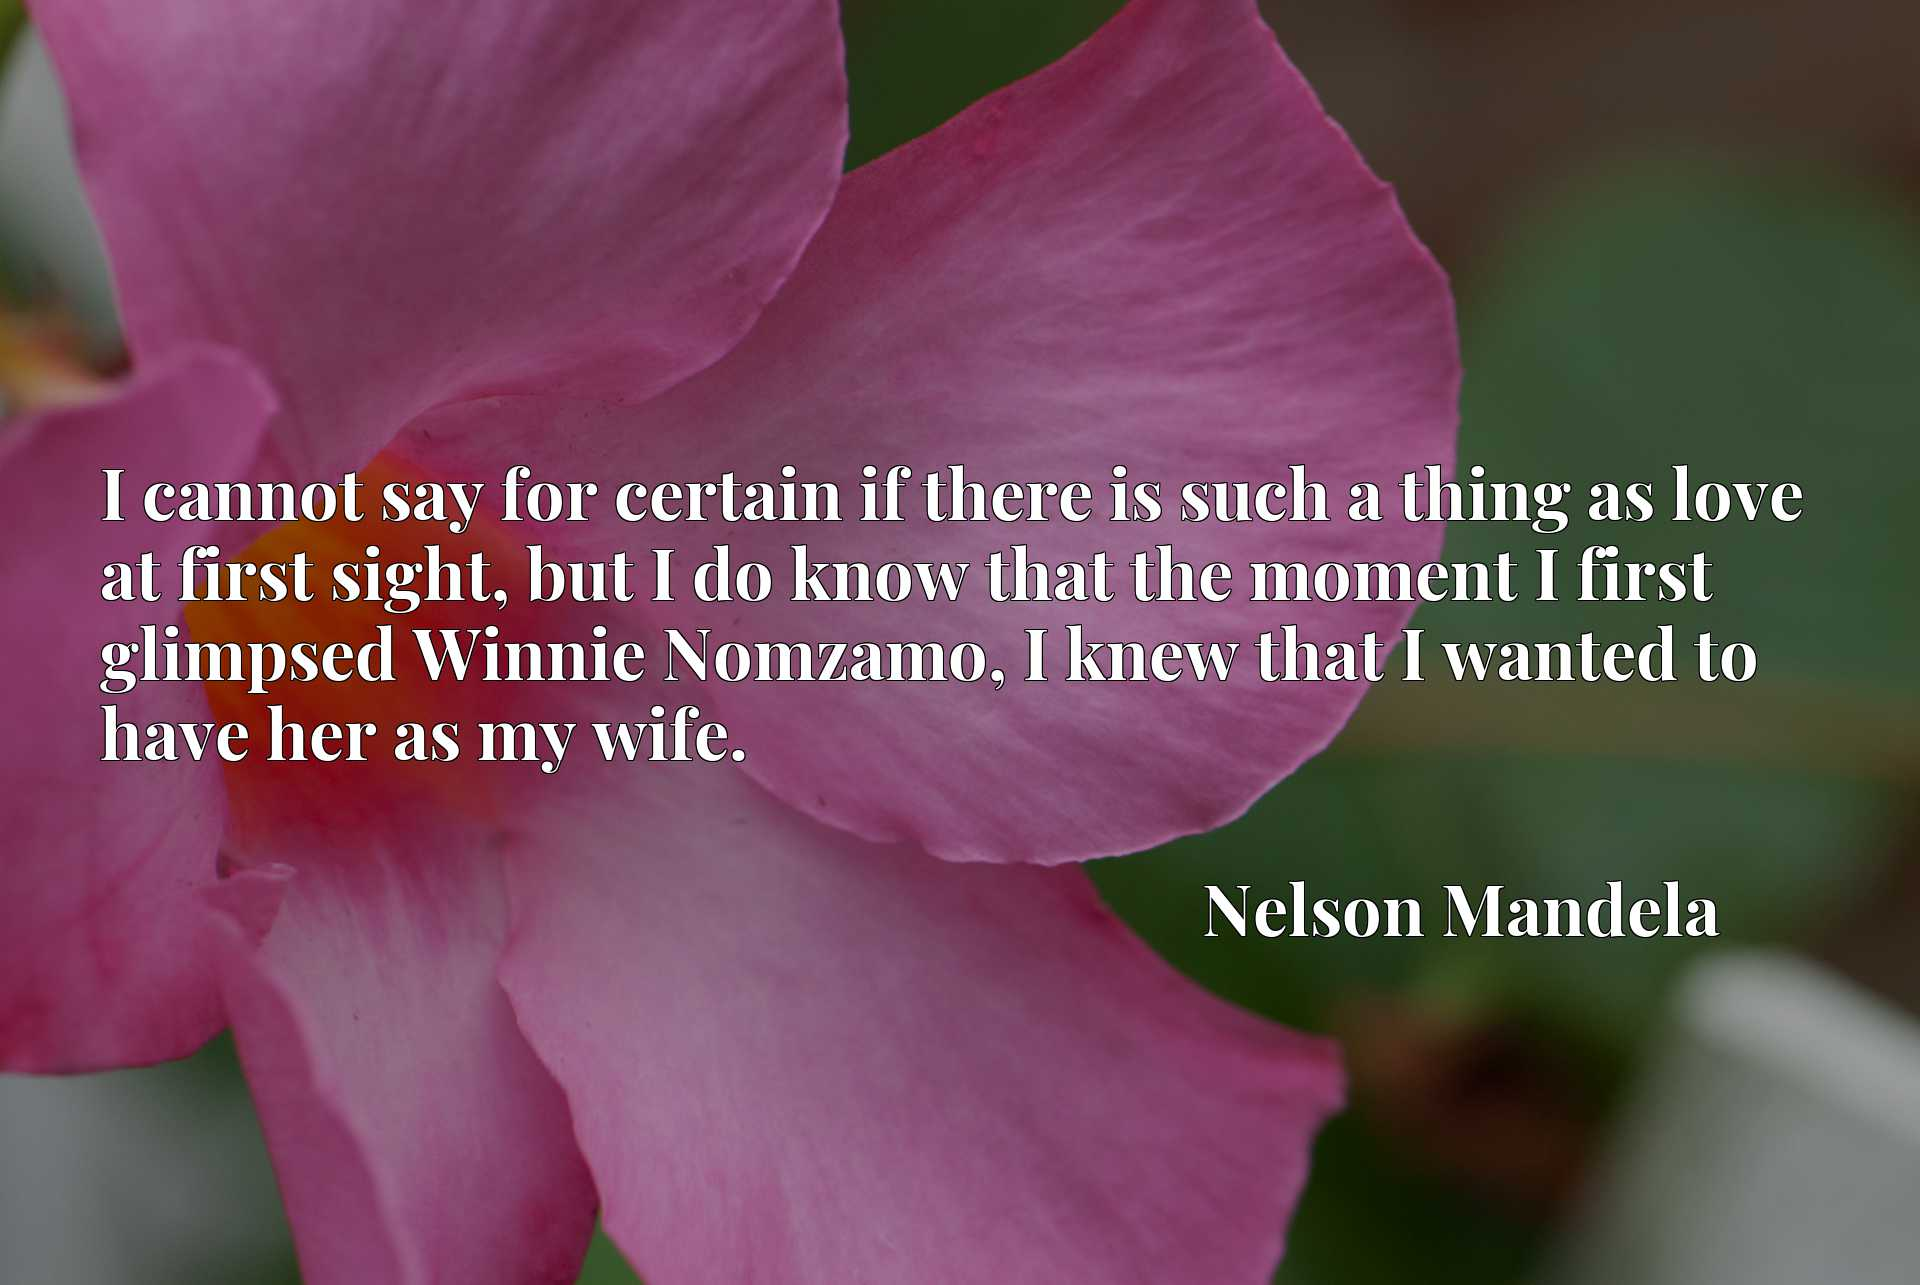 Quote Picture :I cannot say for certain if there is such a thing as love at first sight, but I do know that the moment I first glimpsed Winnie Nomzamo, I knew that I wanted to have her as my wife.